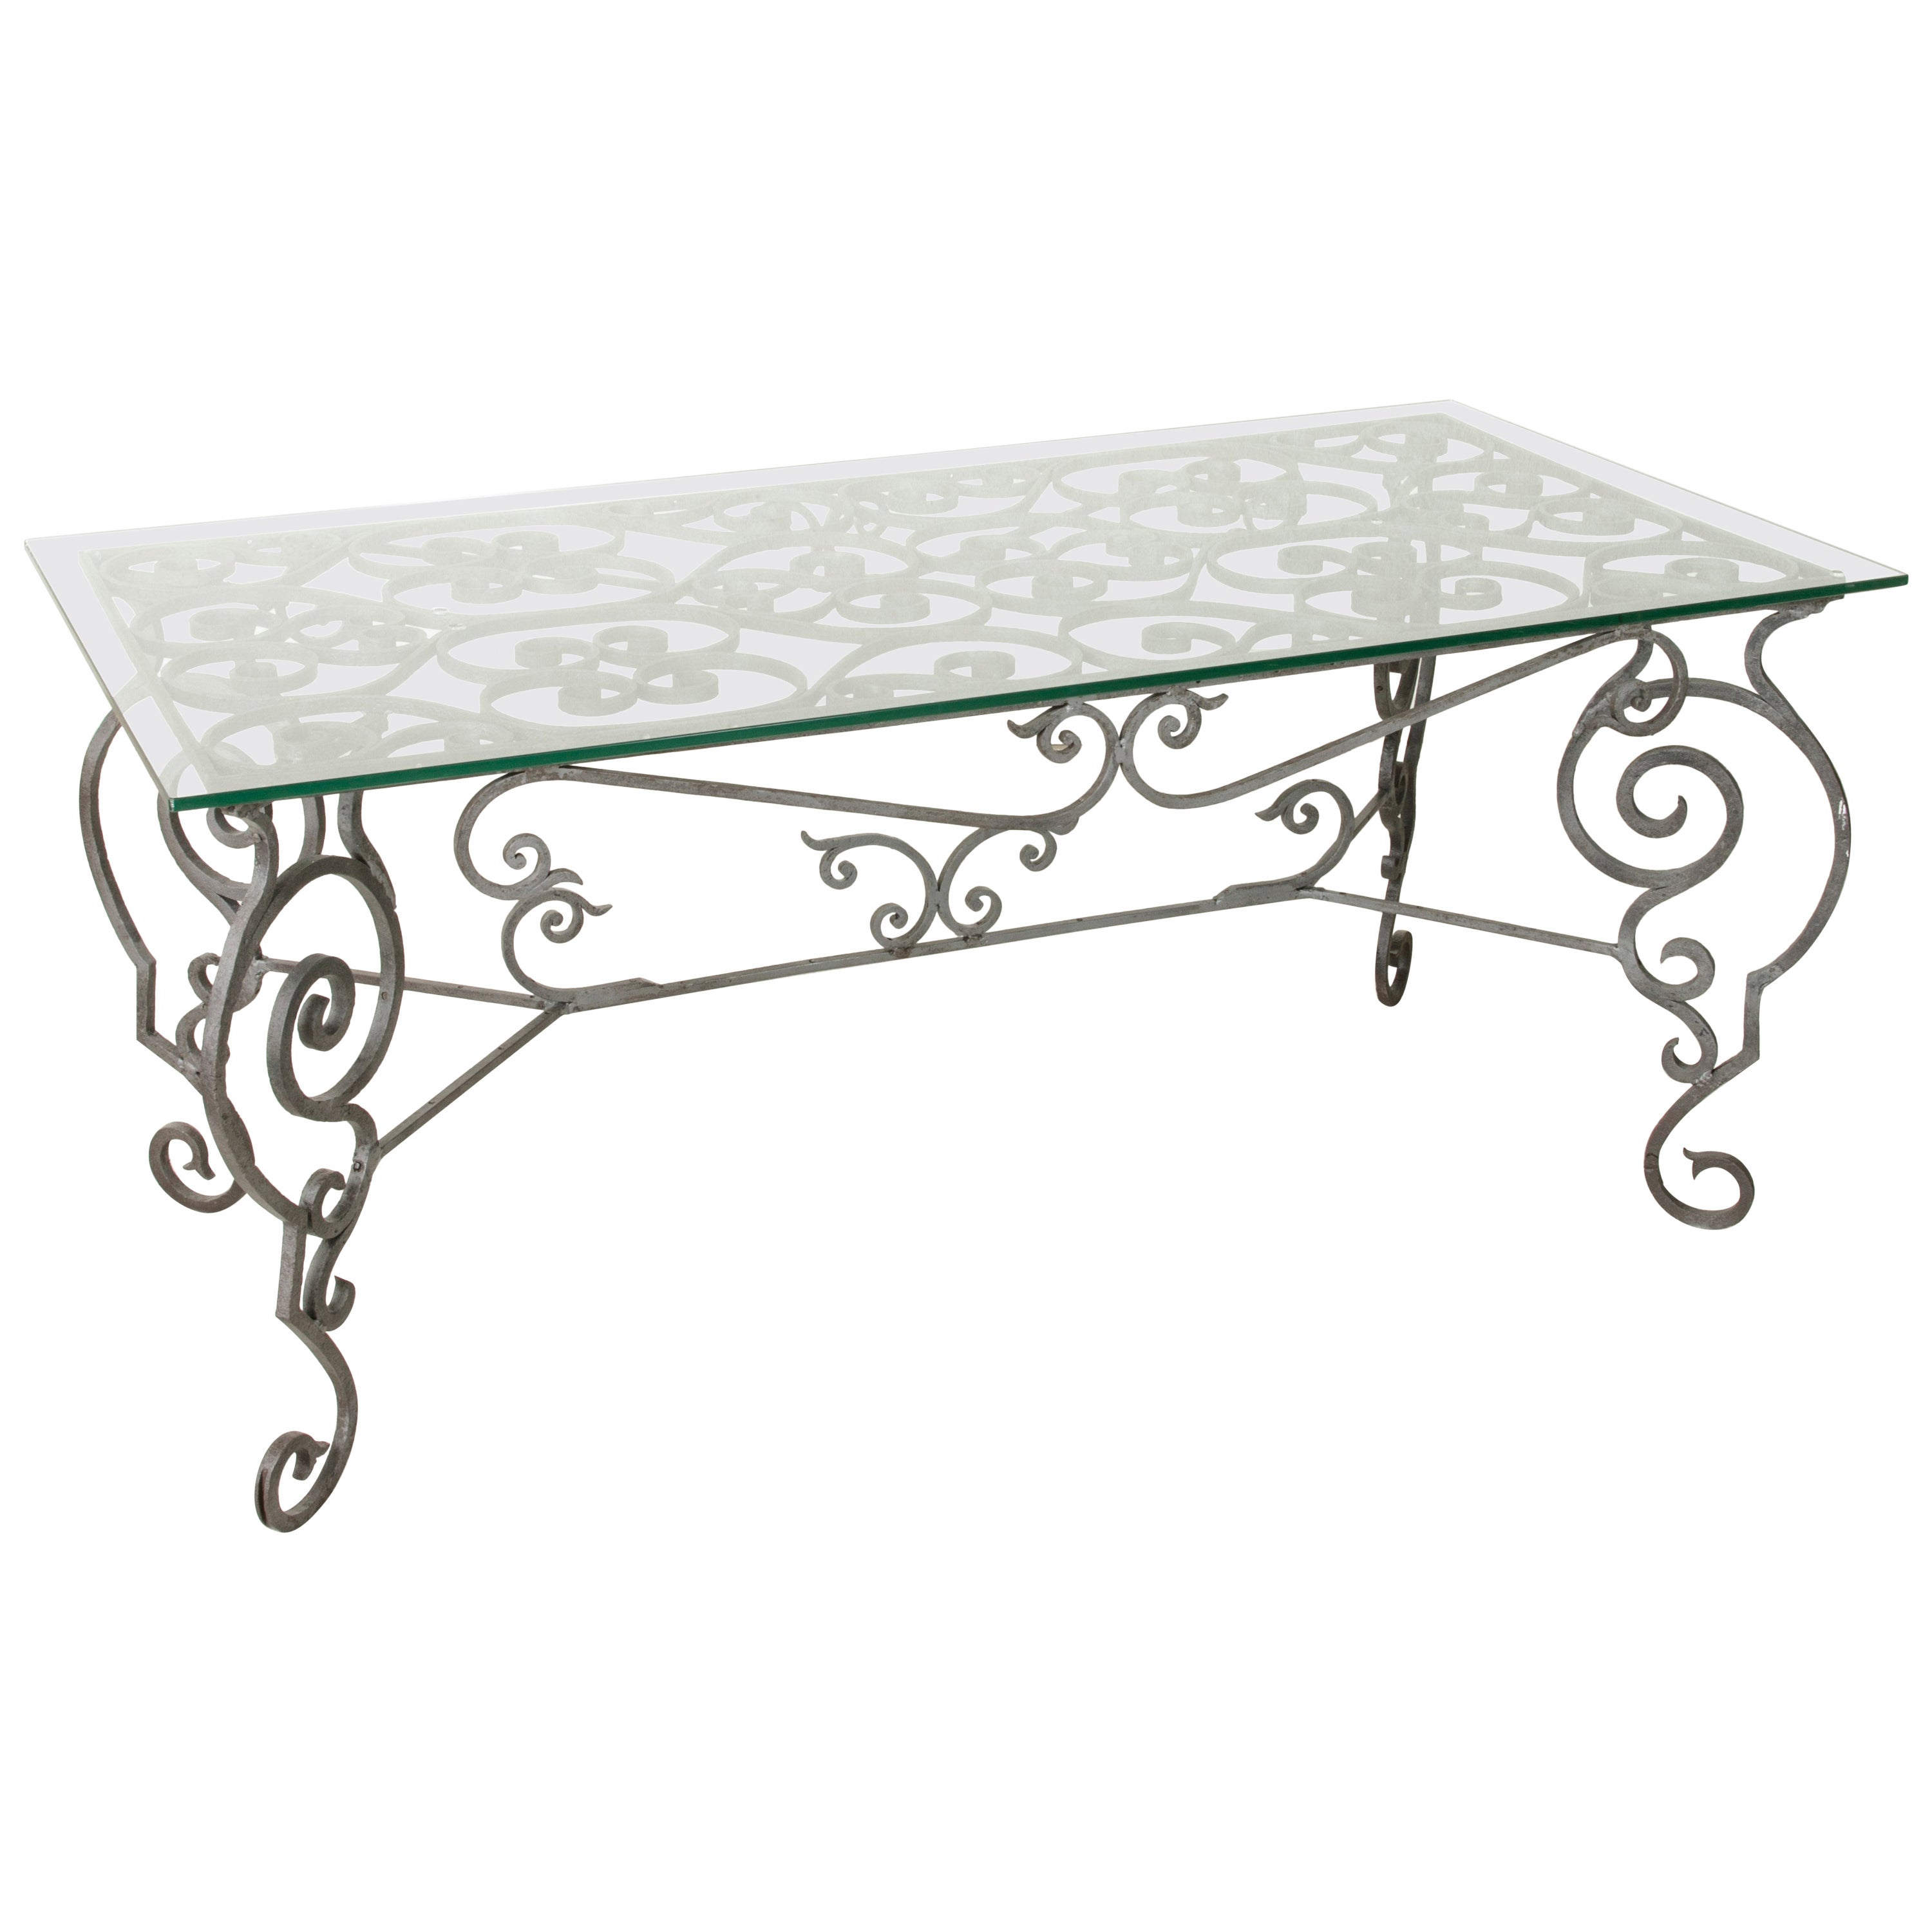 Large Early 20th Century Hand Forged Iron Outdoor Garden Dining Table with Glass